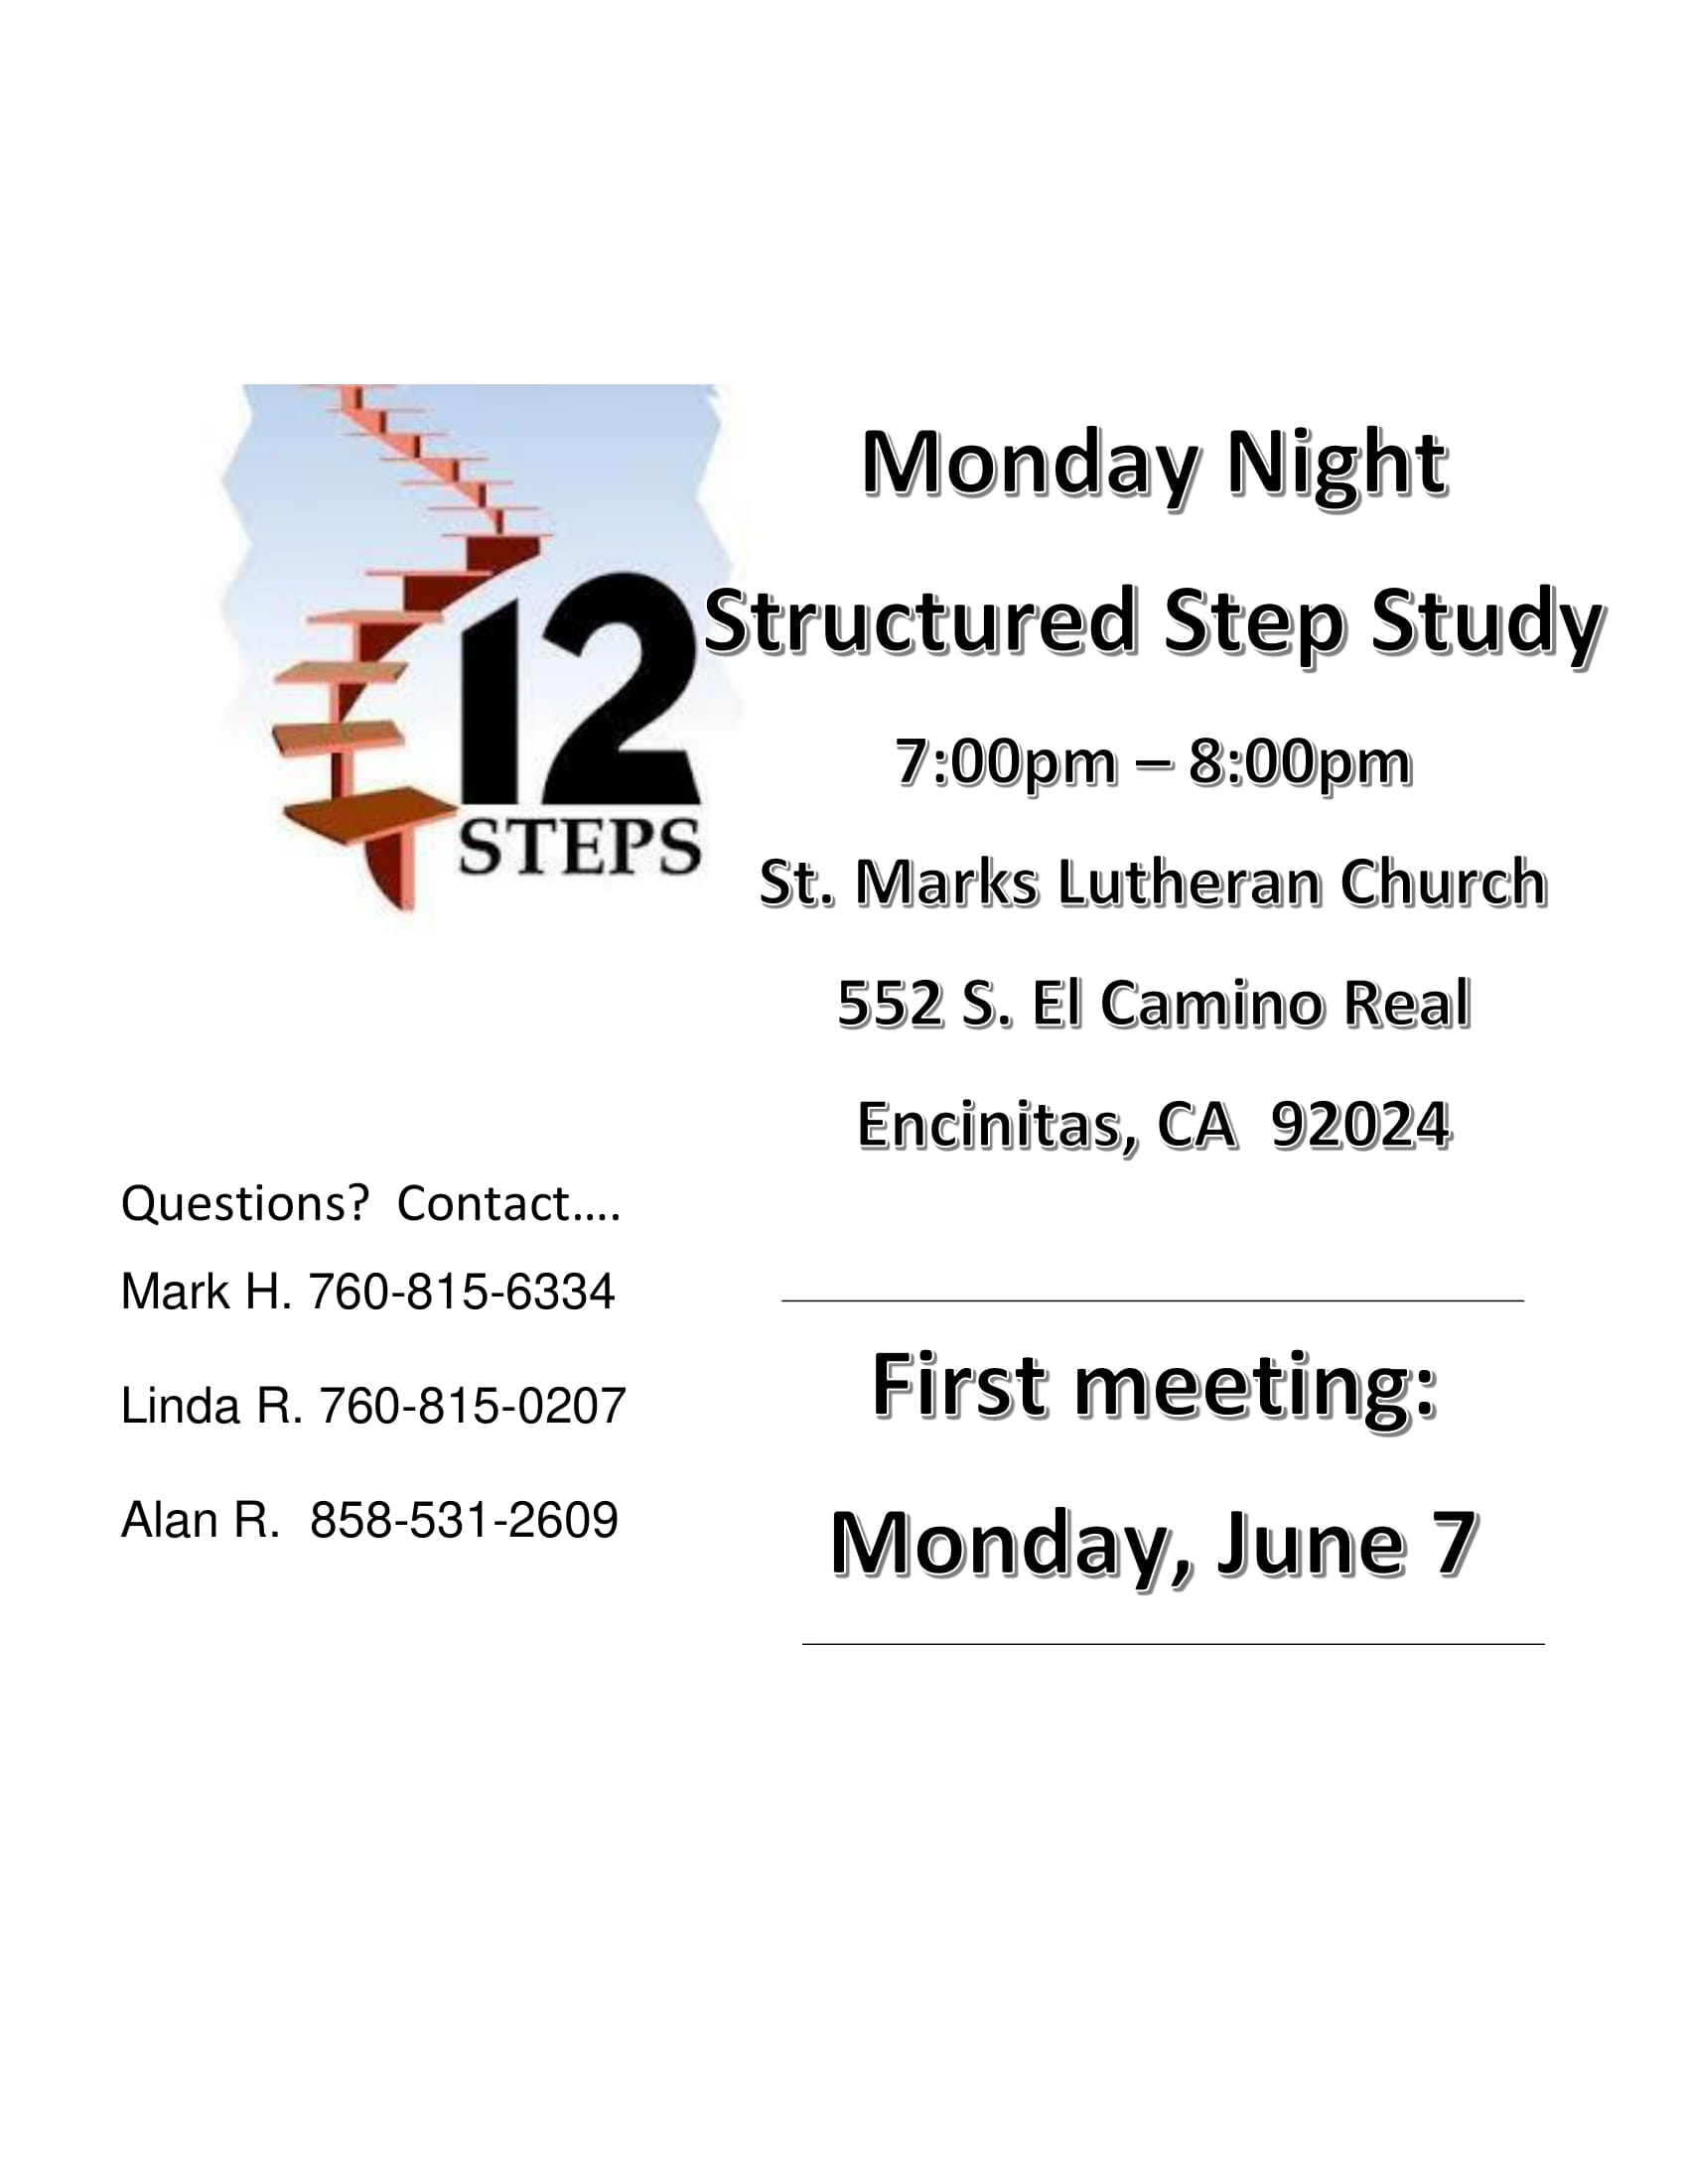 Structured Step Study